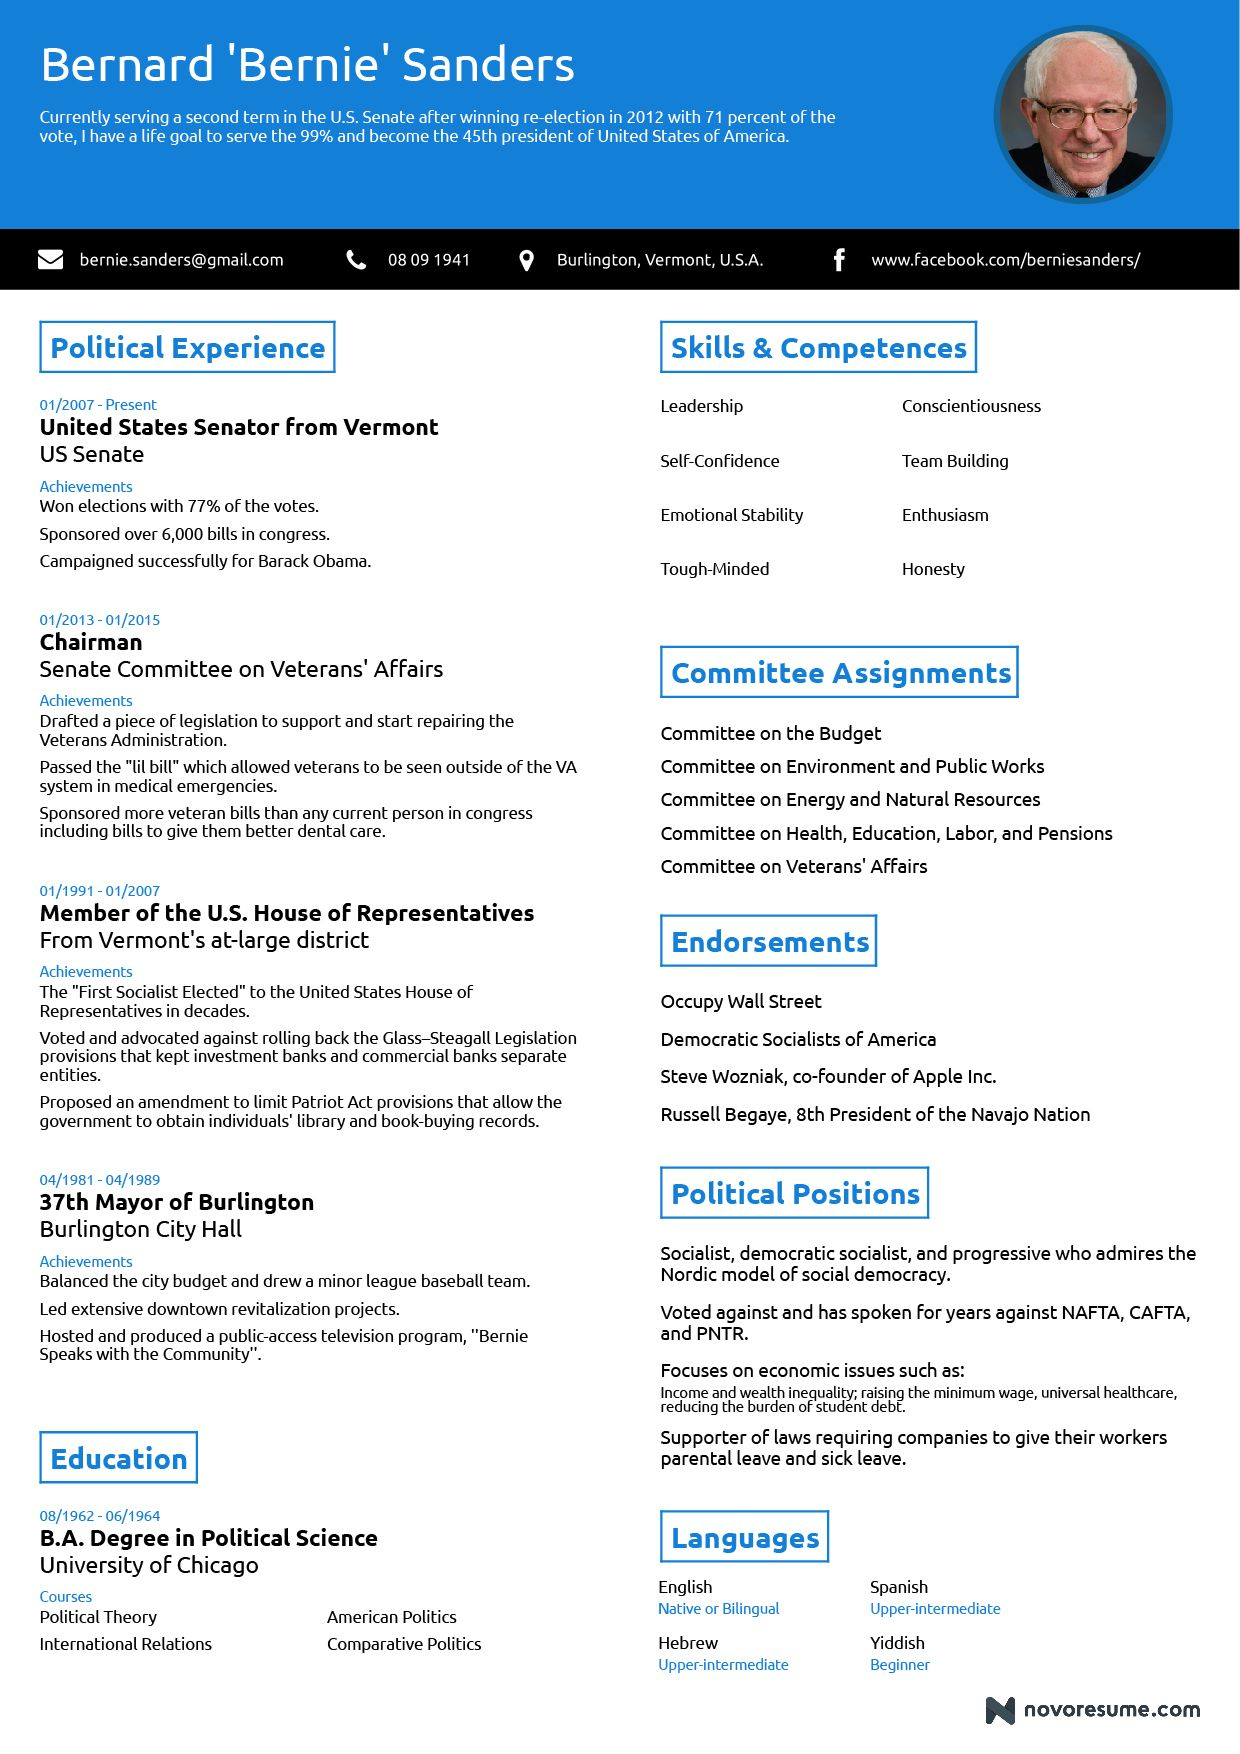 One Page Professional Résumé Highlighting The Professional Competences Of  Bernie Sanders! Create Your Own Résumé For Free At Novoresume.com  #Novorésumé ...